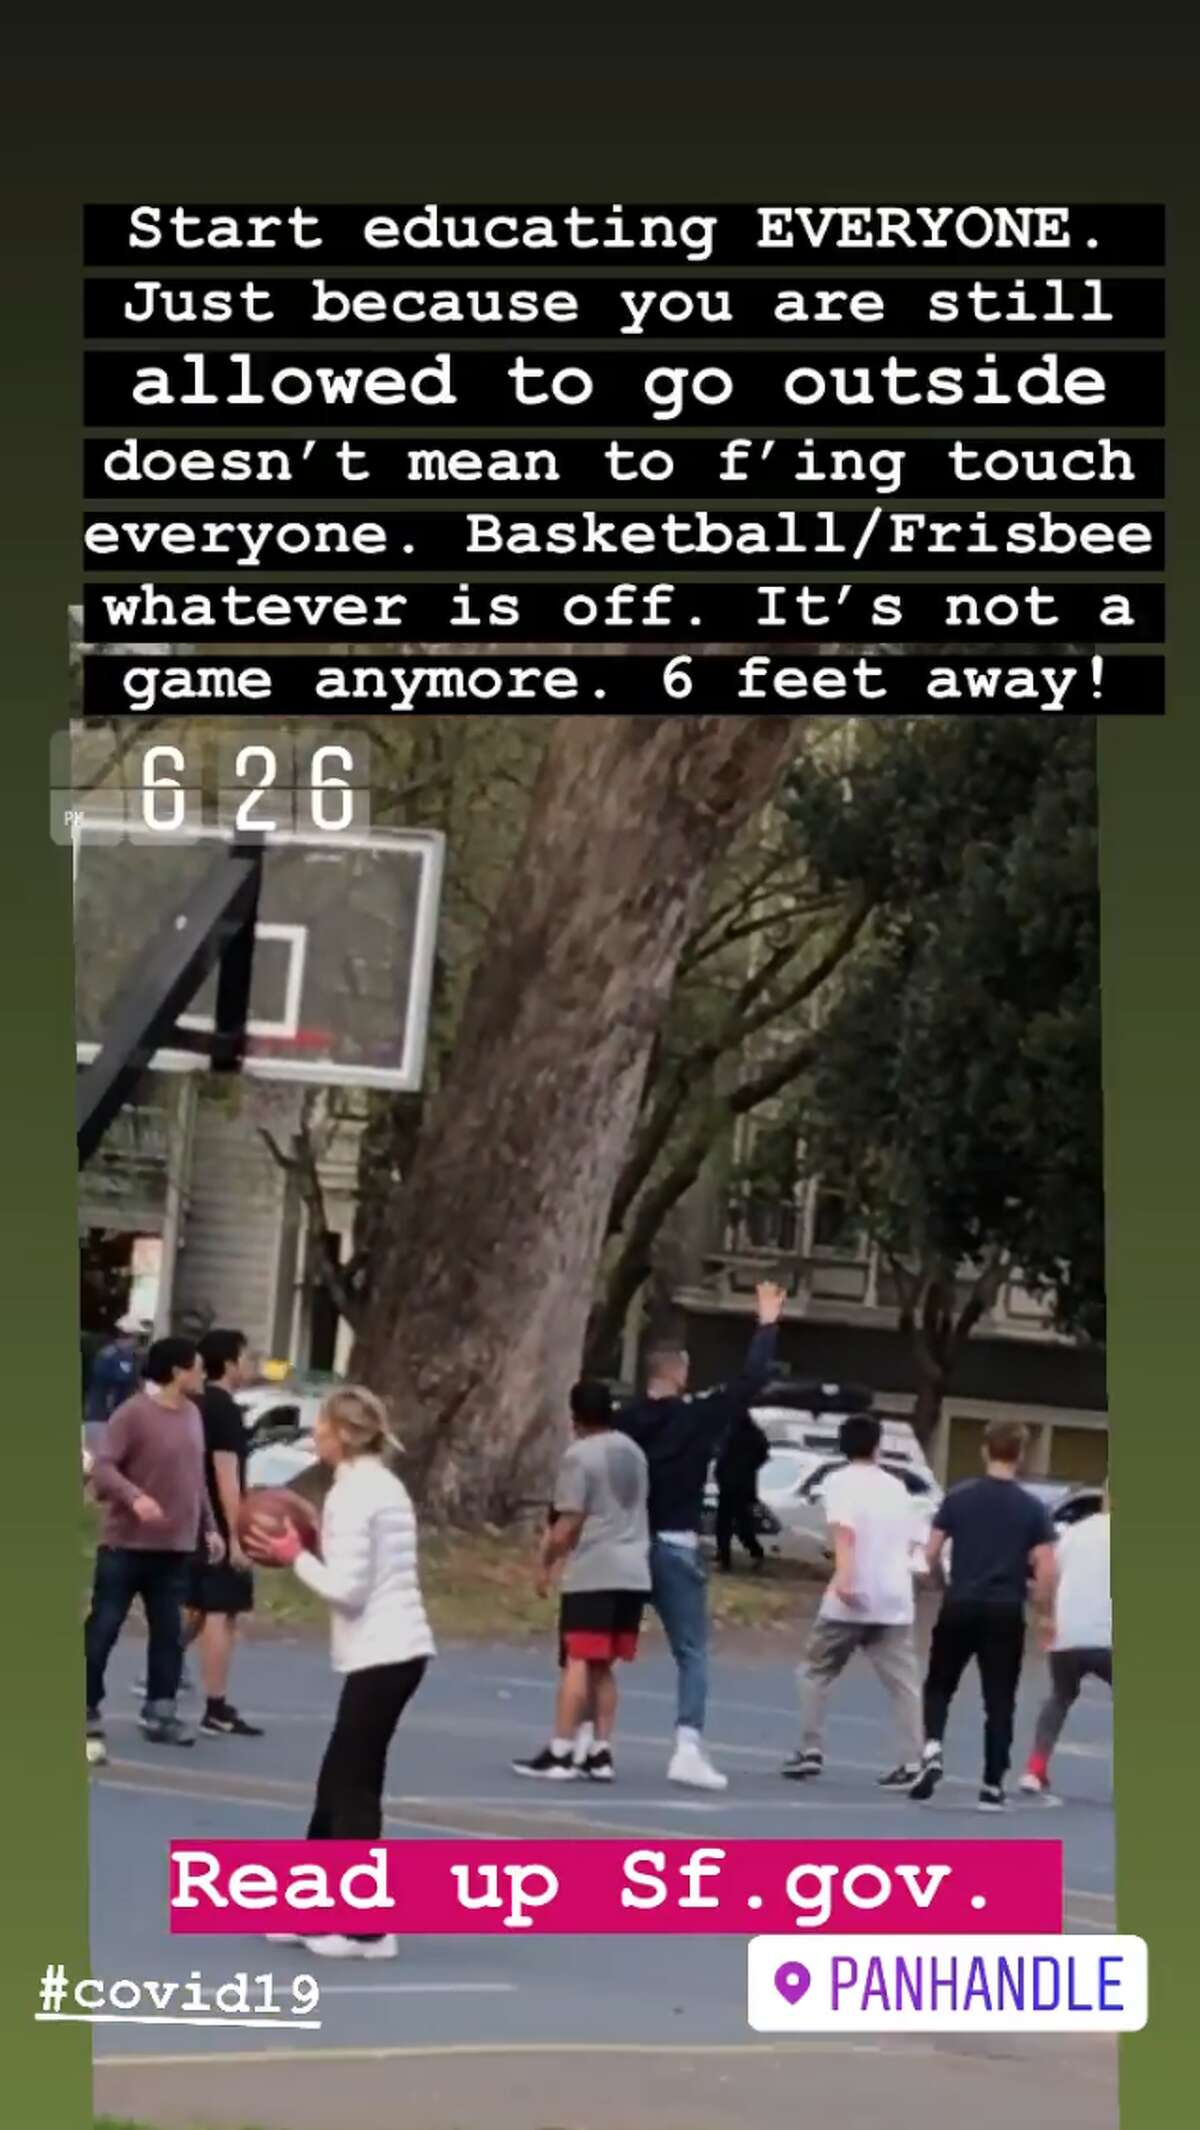 captain.ronn share this Instagram story of people playing basketball in close contact in the Panhandle in San Francisco on Tuesday evening. San Francisco had its first shelter-in-place day on March 17th, 2020 in response to the spread of the COVID-19 coronavirus.